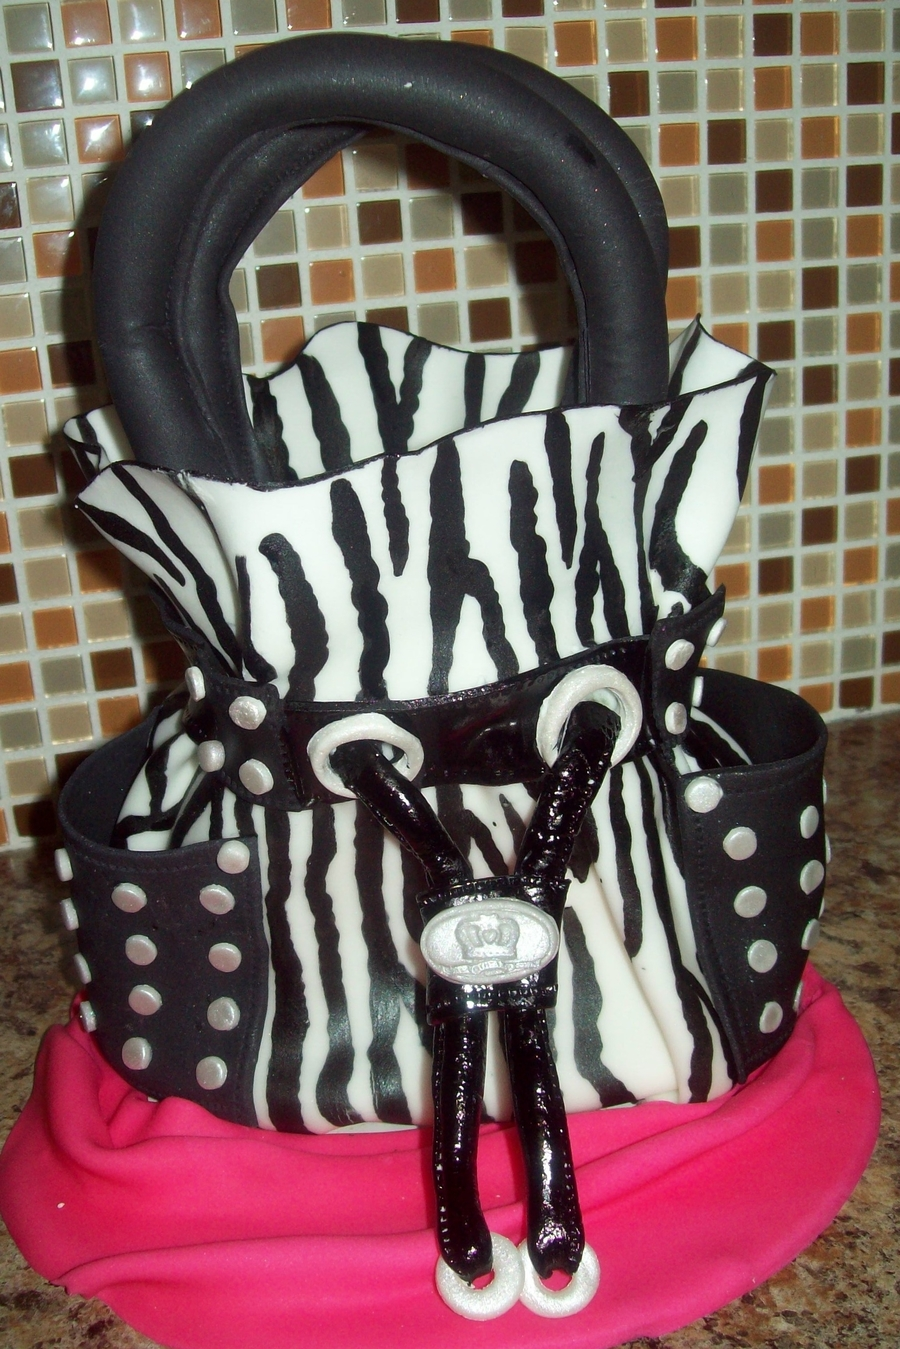 Duplicate Of My Purse on Cake Central